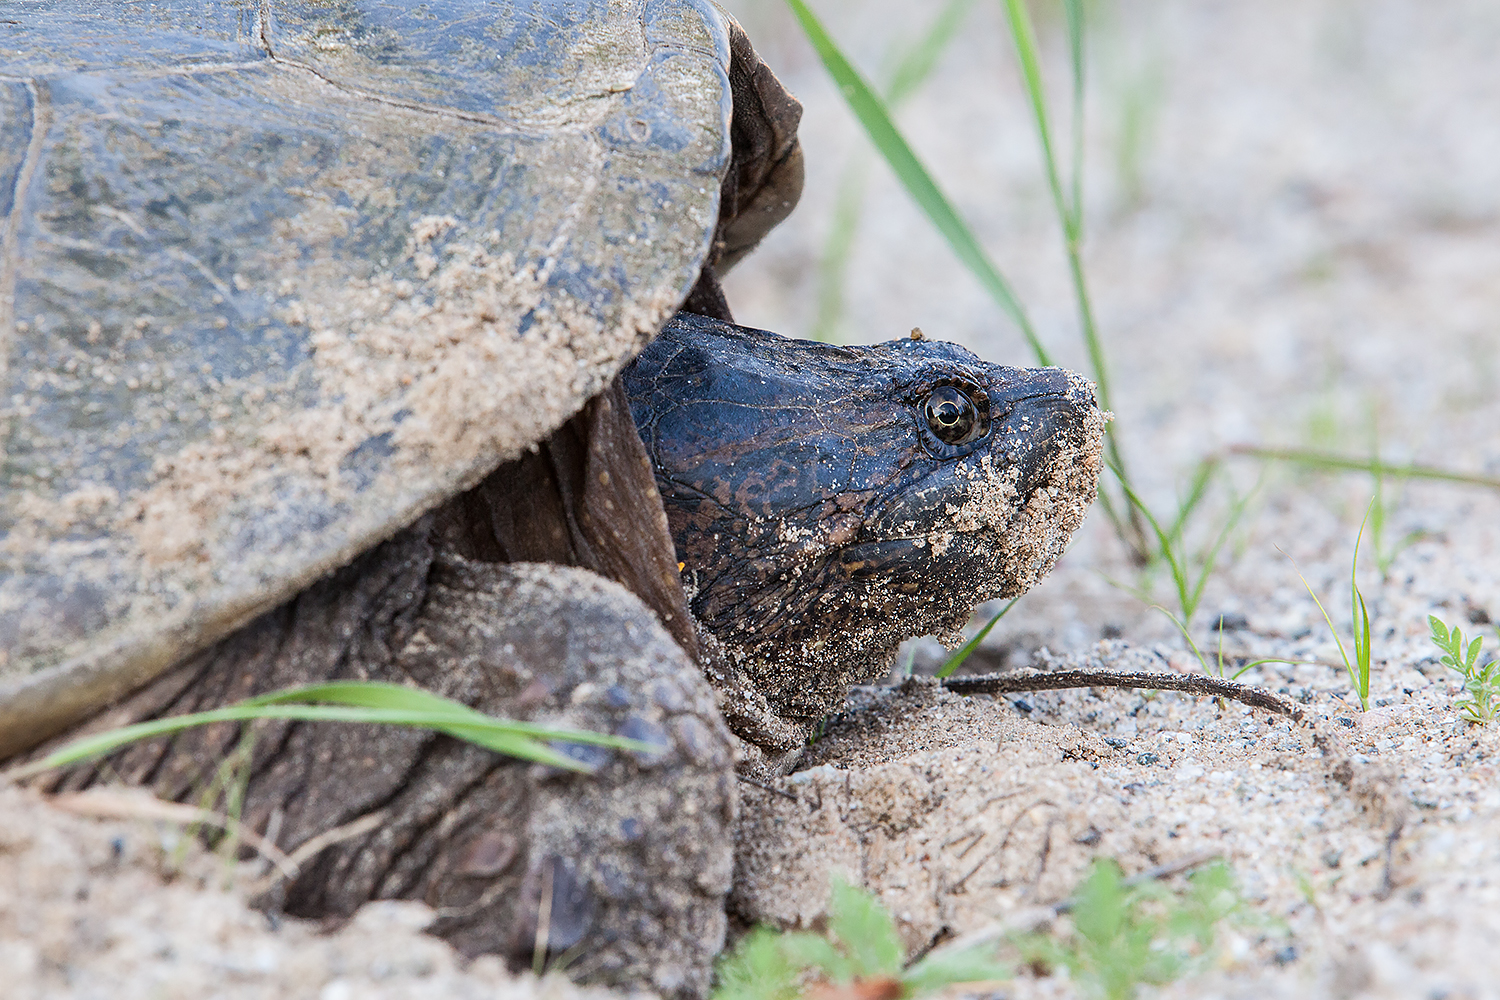 A snapping turtle gets ready to lay eggs in the sand in the Adirondacks.